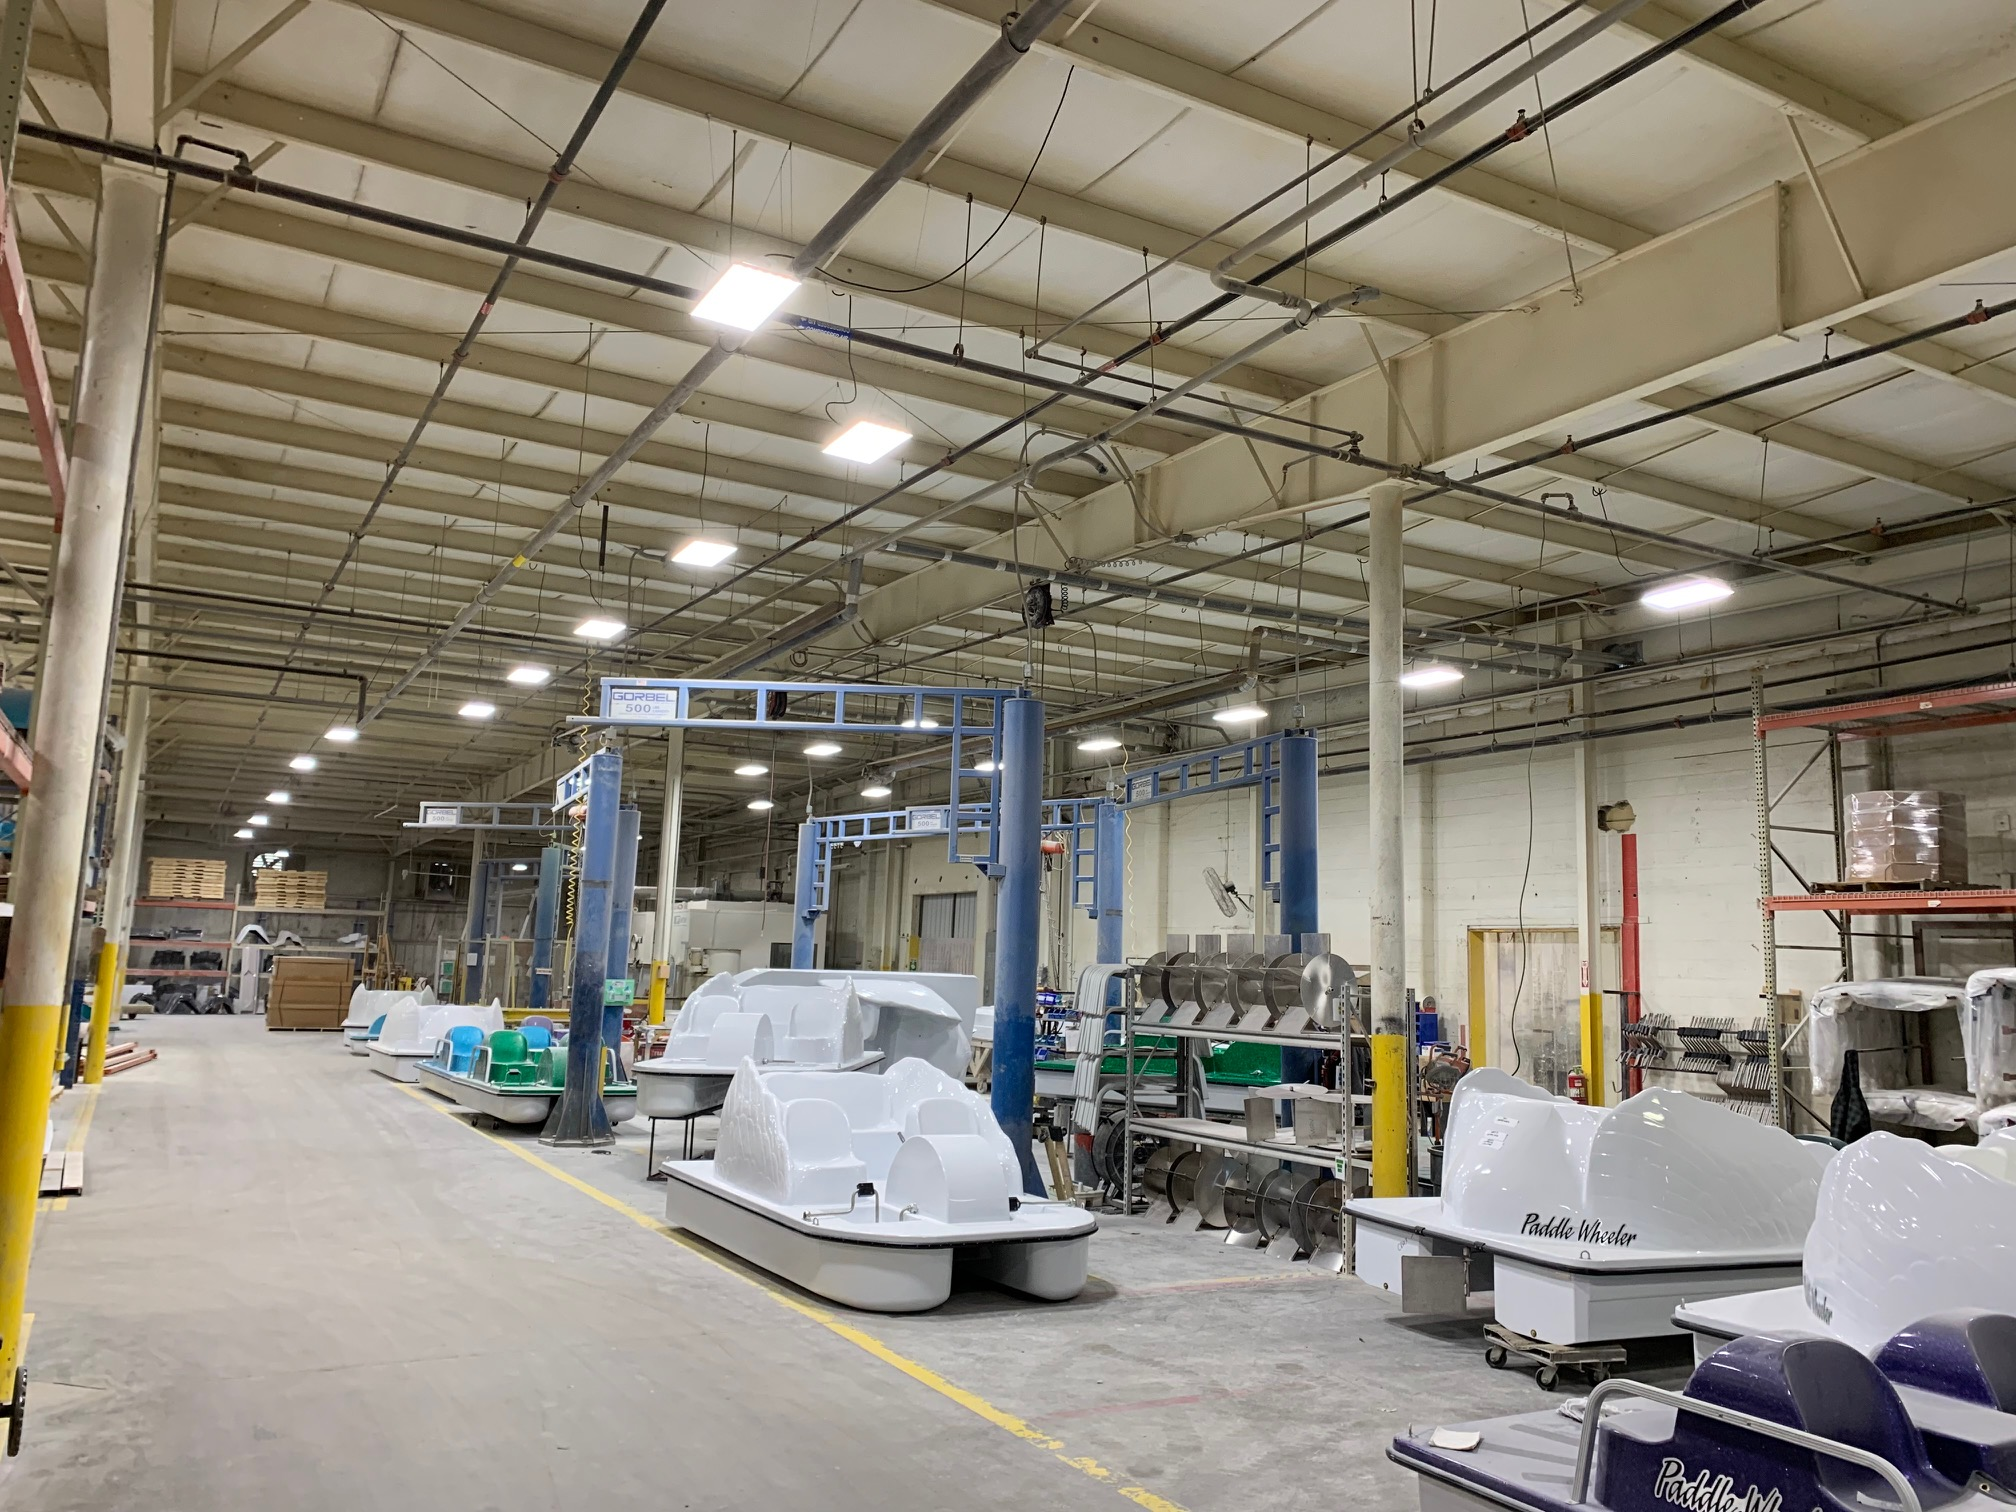 Great Lakes Composites Saves $50,000 per year with new LED Lighting